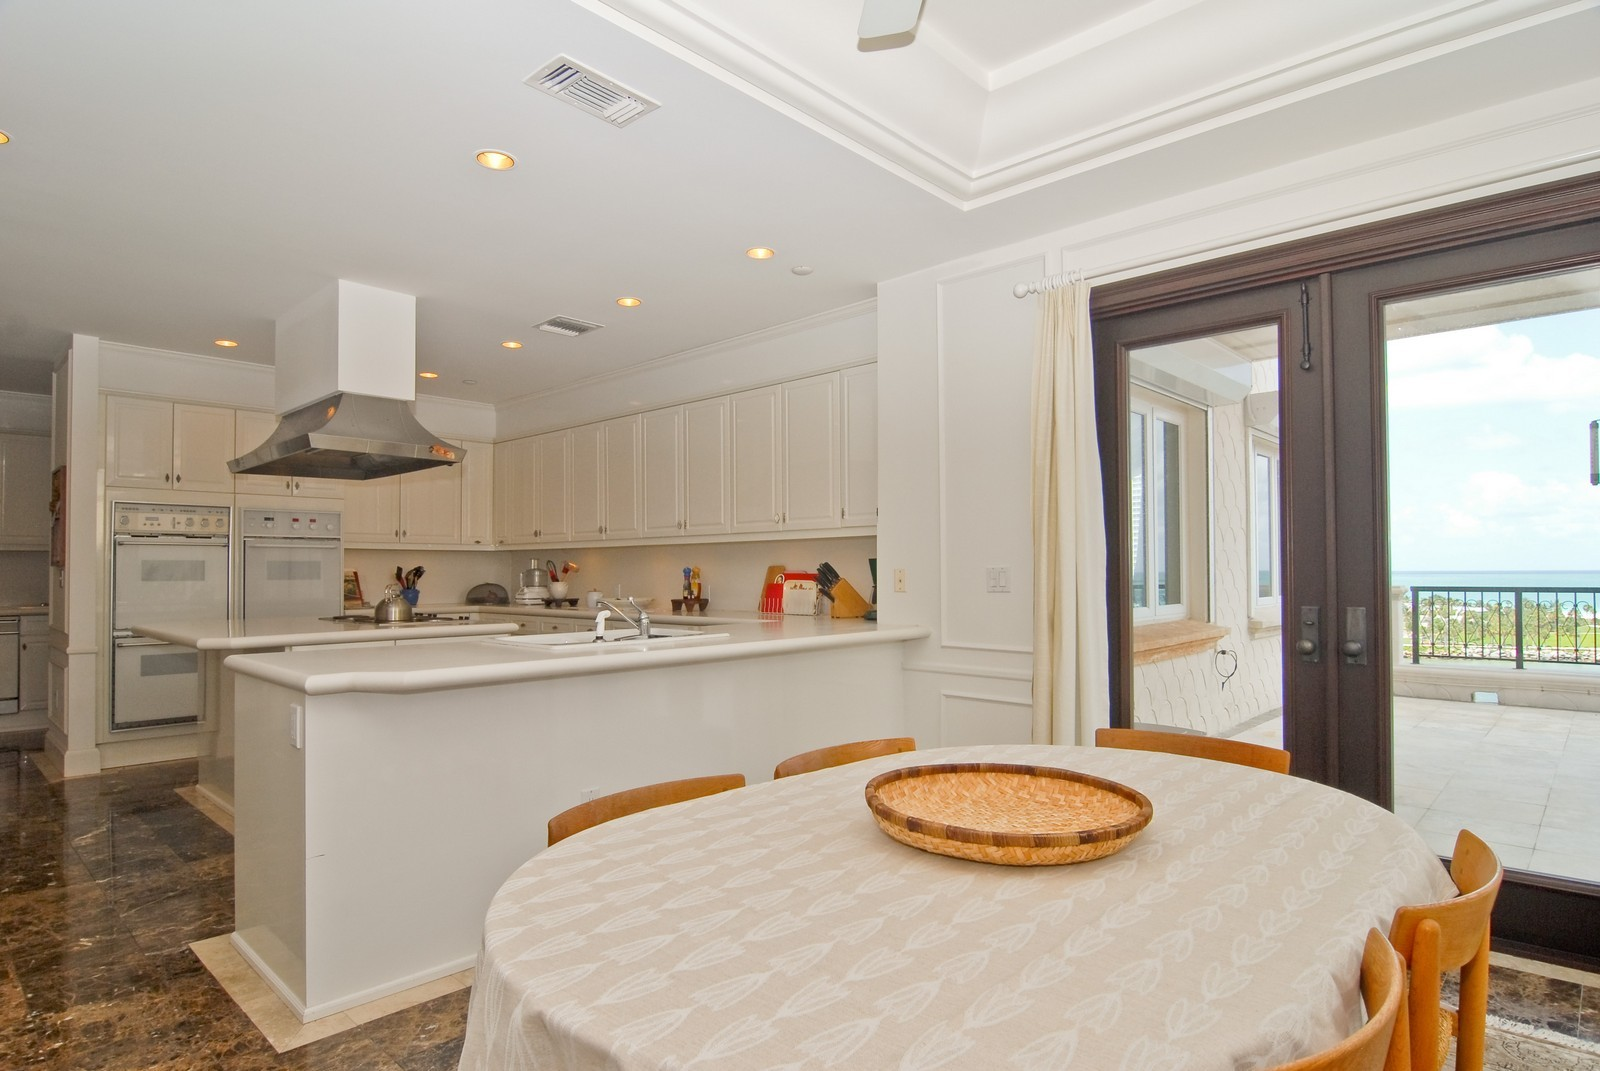 Real Estate Photography - 7281 Fisher Island Drive, Fisher Island, FL, 33109 - Kitchen / Breakfast Room